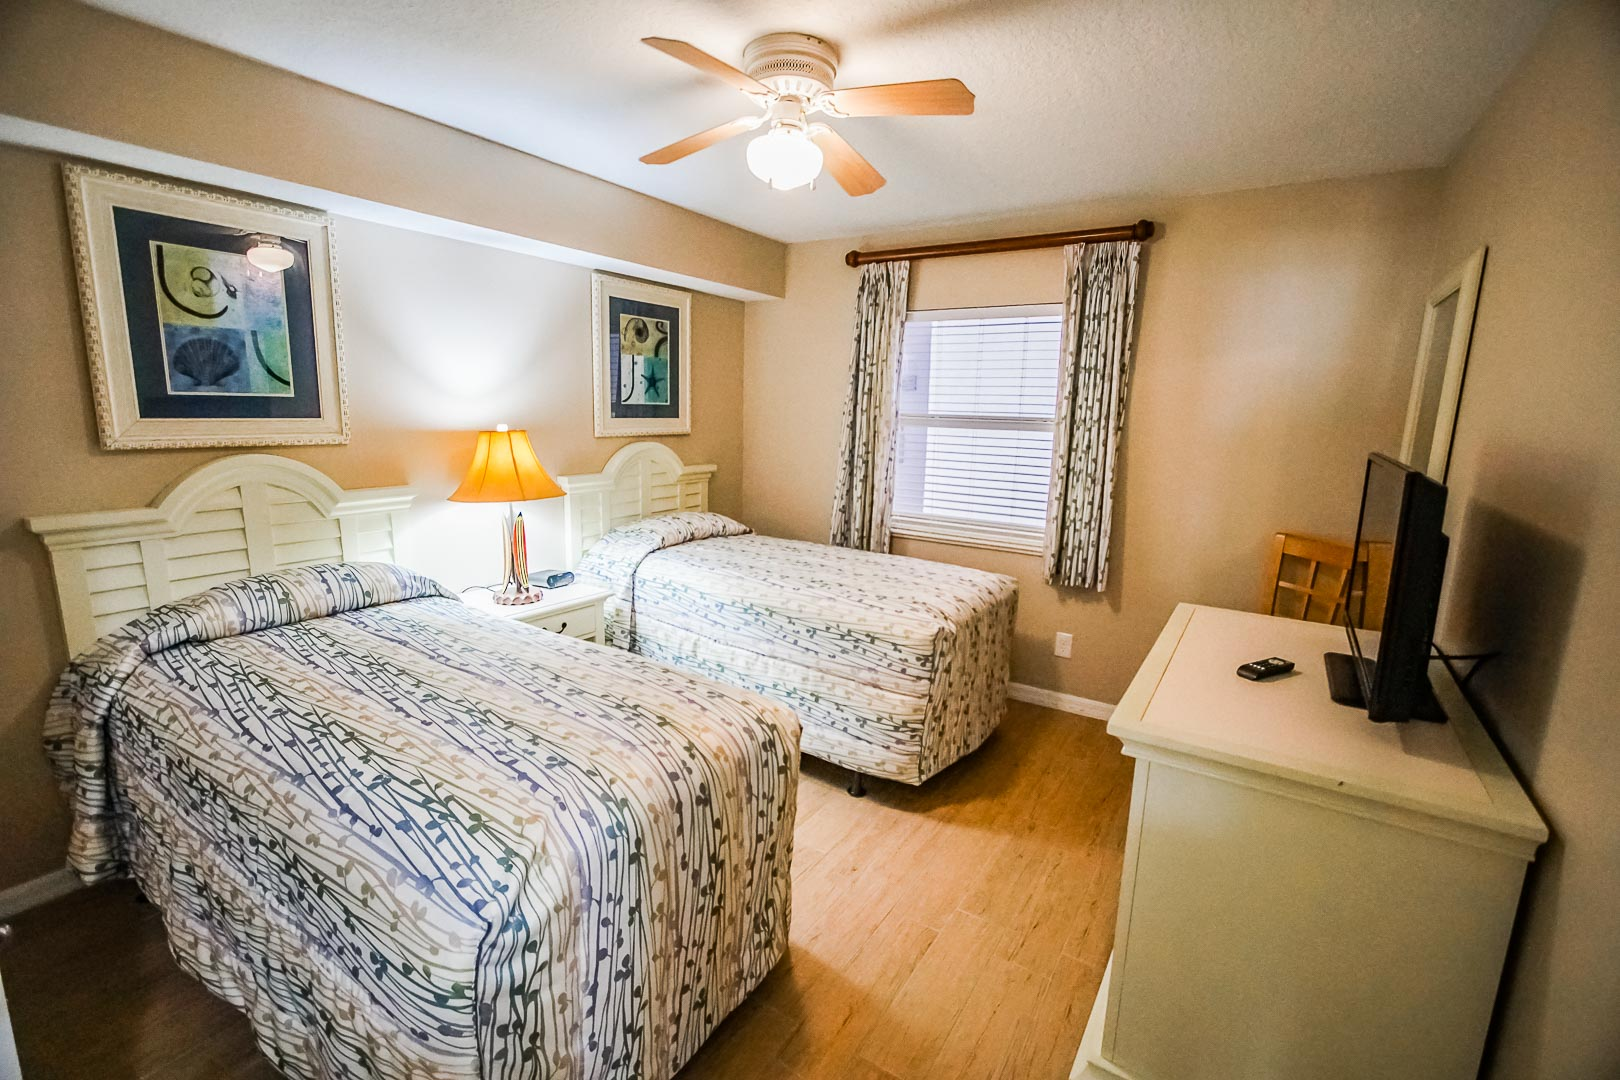 A spacious 2 bedroom unit with twin beds at VRI's The Resort on Cocoa Beach in Florida.